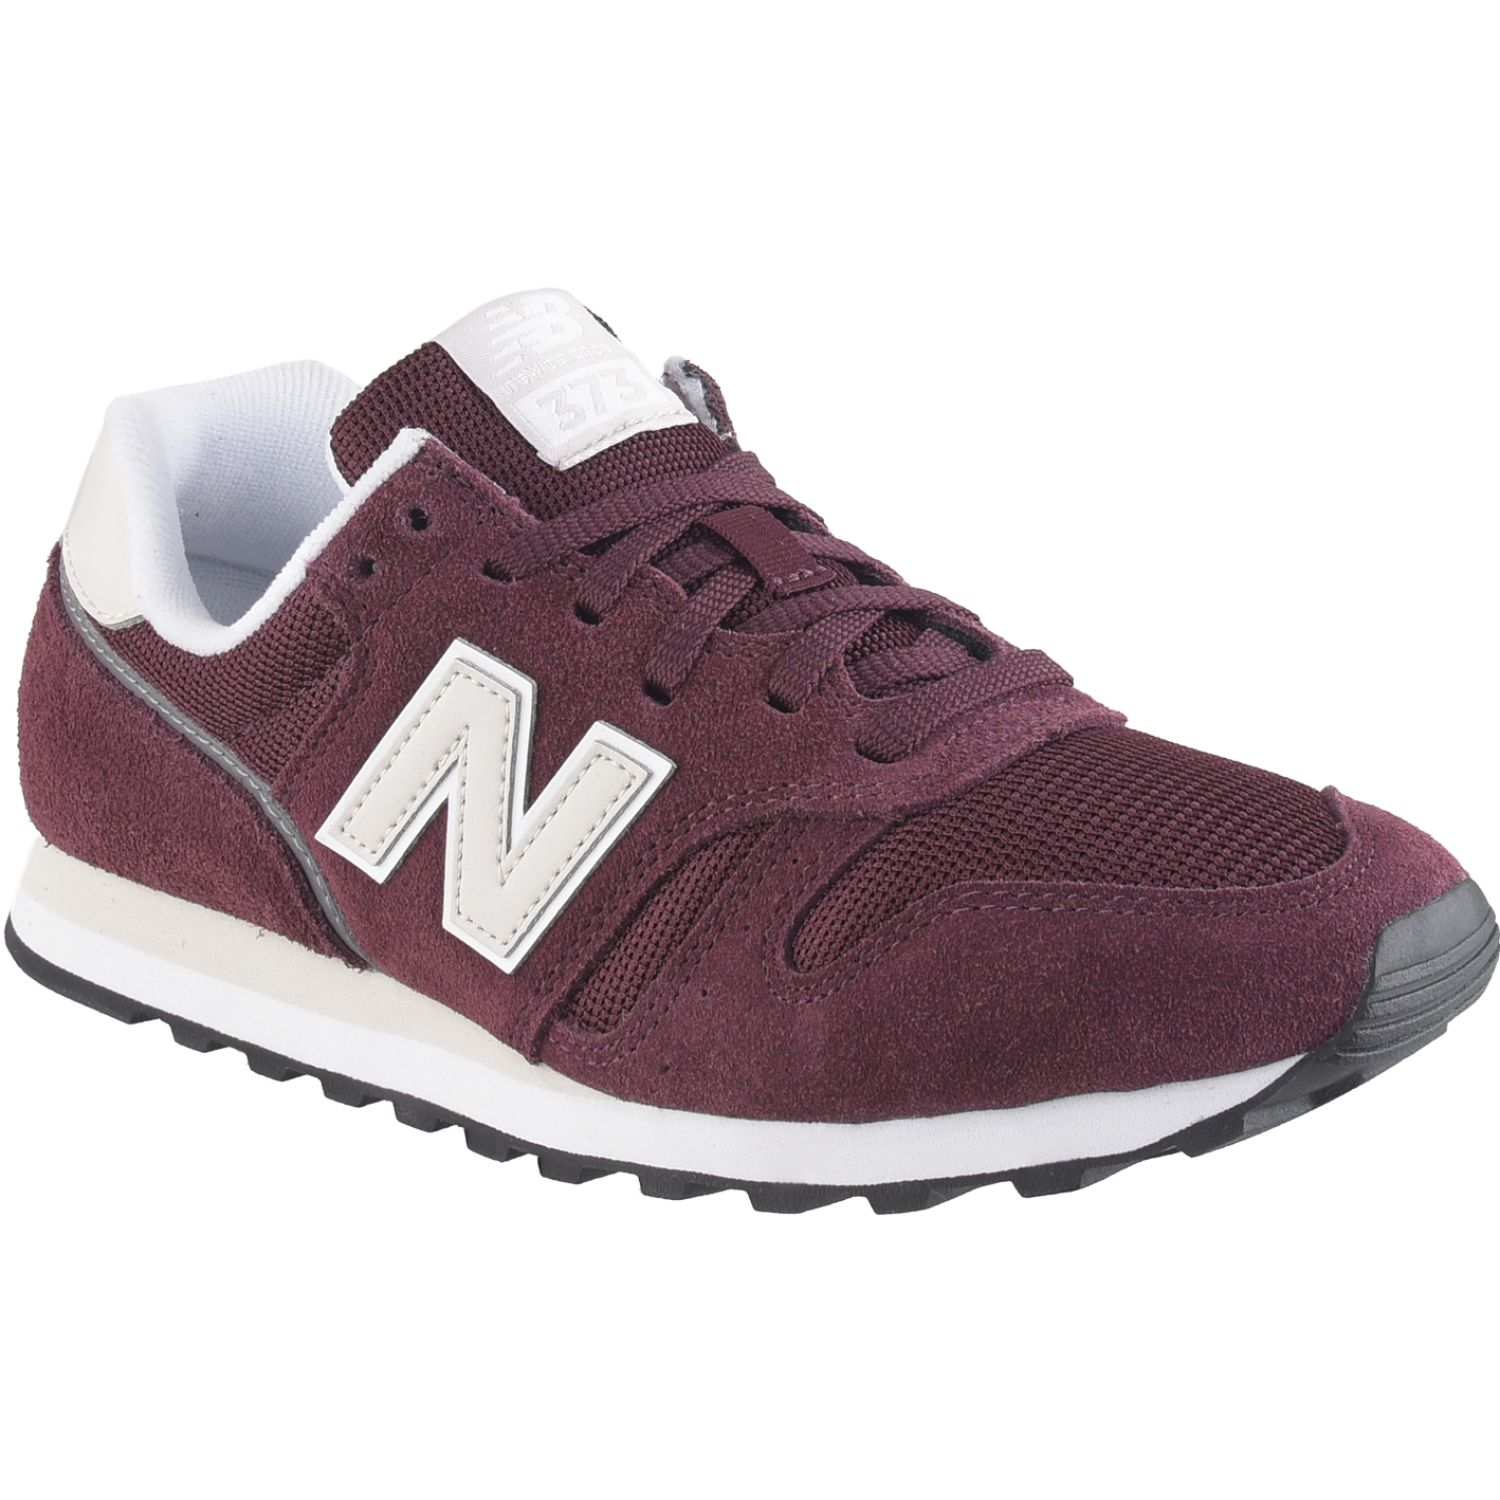 New Balance 373 Vino Walking